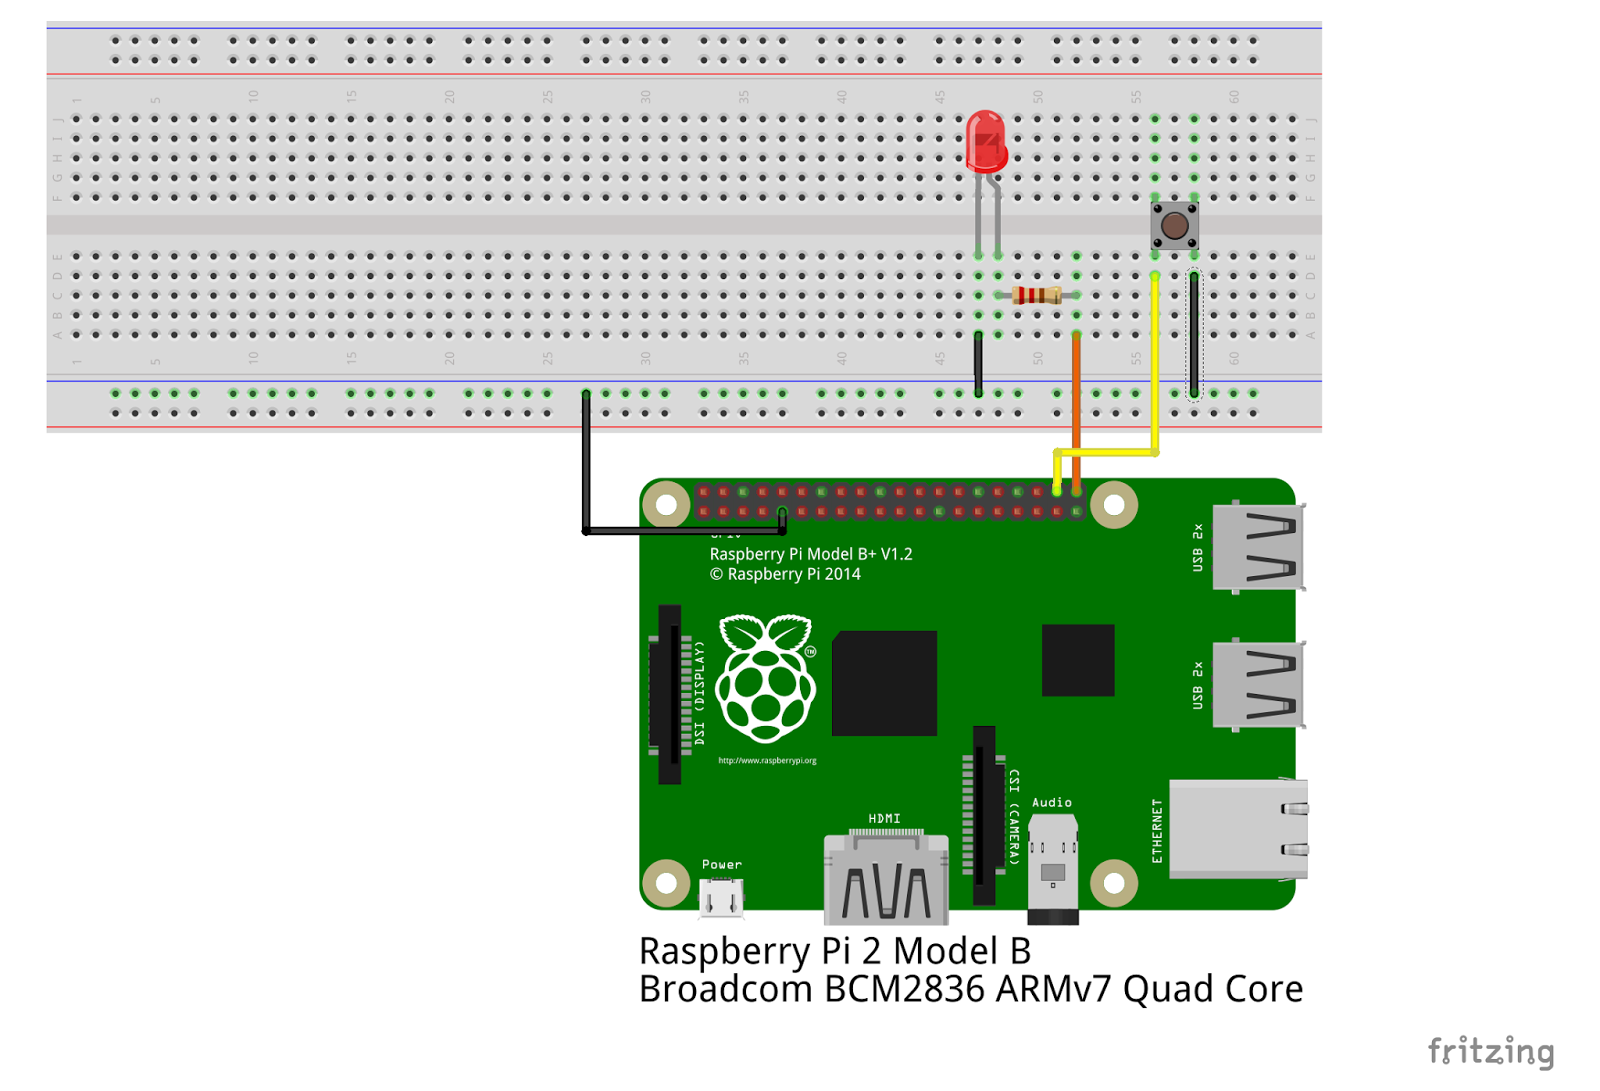 Access Pwm On The Raspberrypi Using C Raspberry Pi Pod Wiringpi Servo Simple Code And Diagram To Control